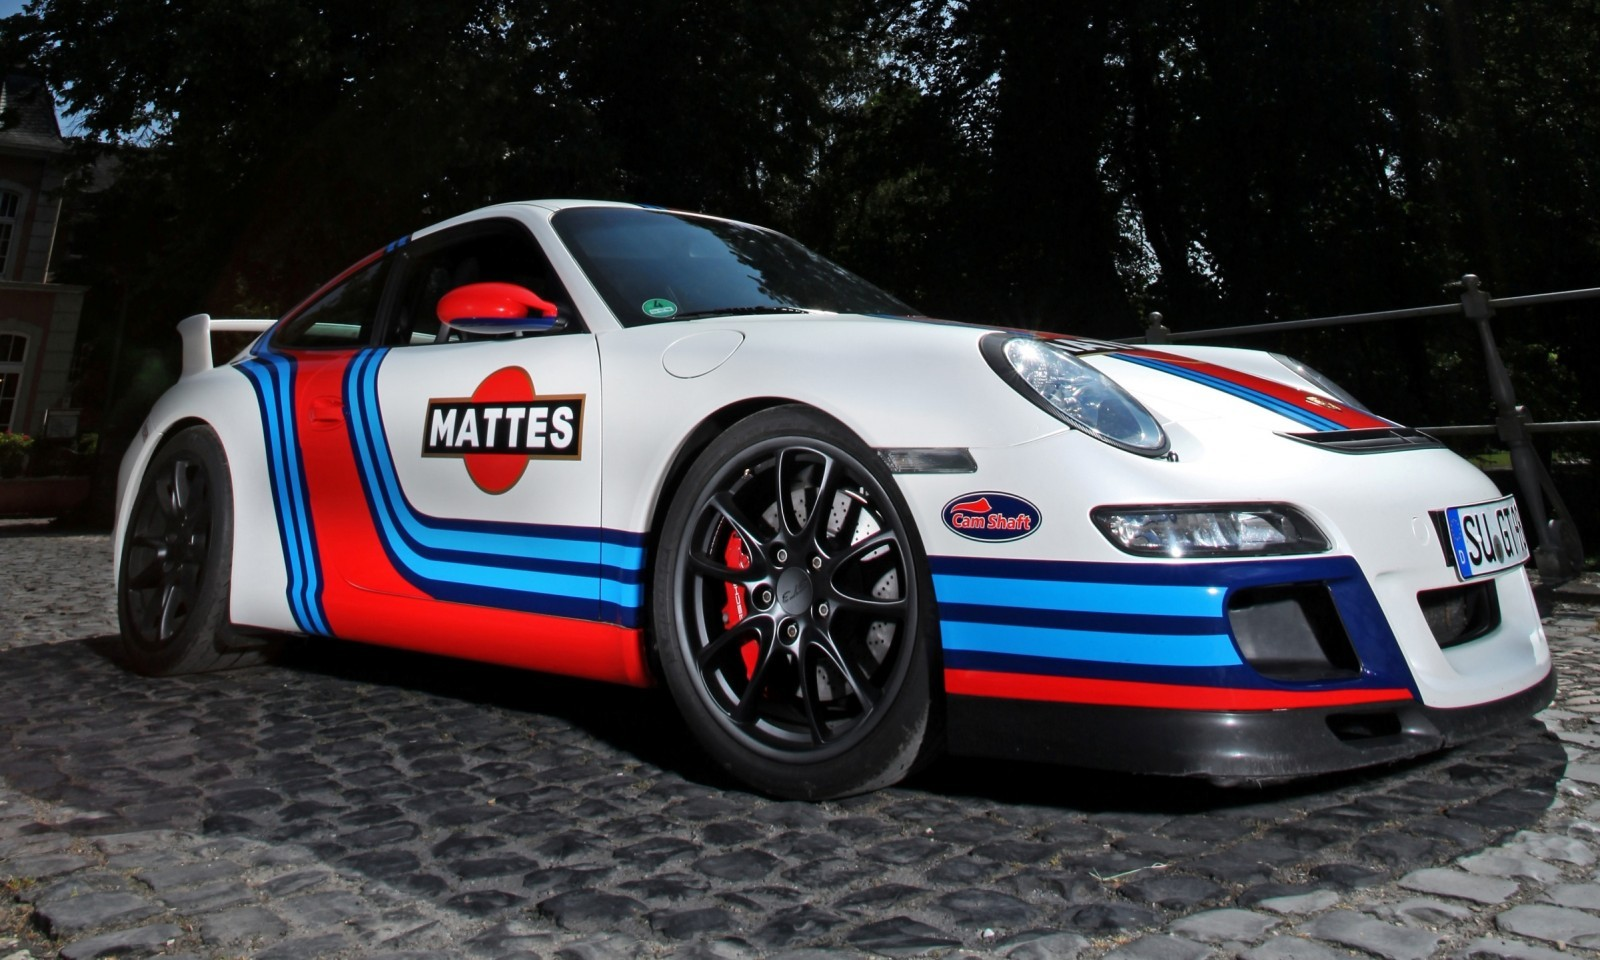 Martini-style Racing Livery by CAM SHAFT for the Porsche 911 GT3 9